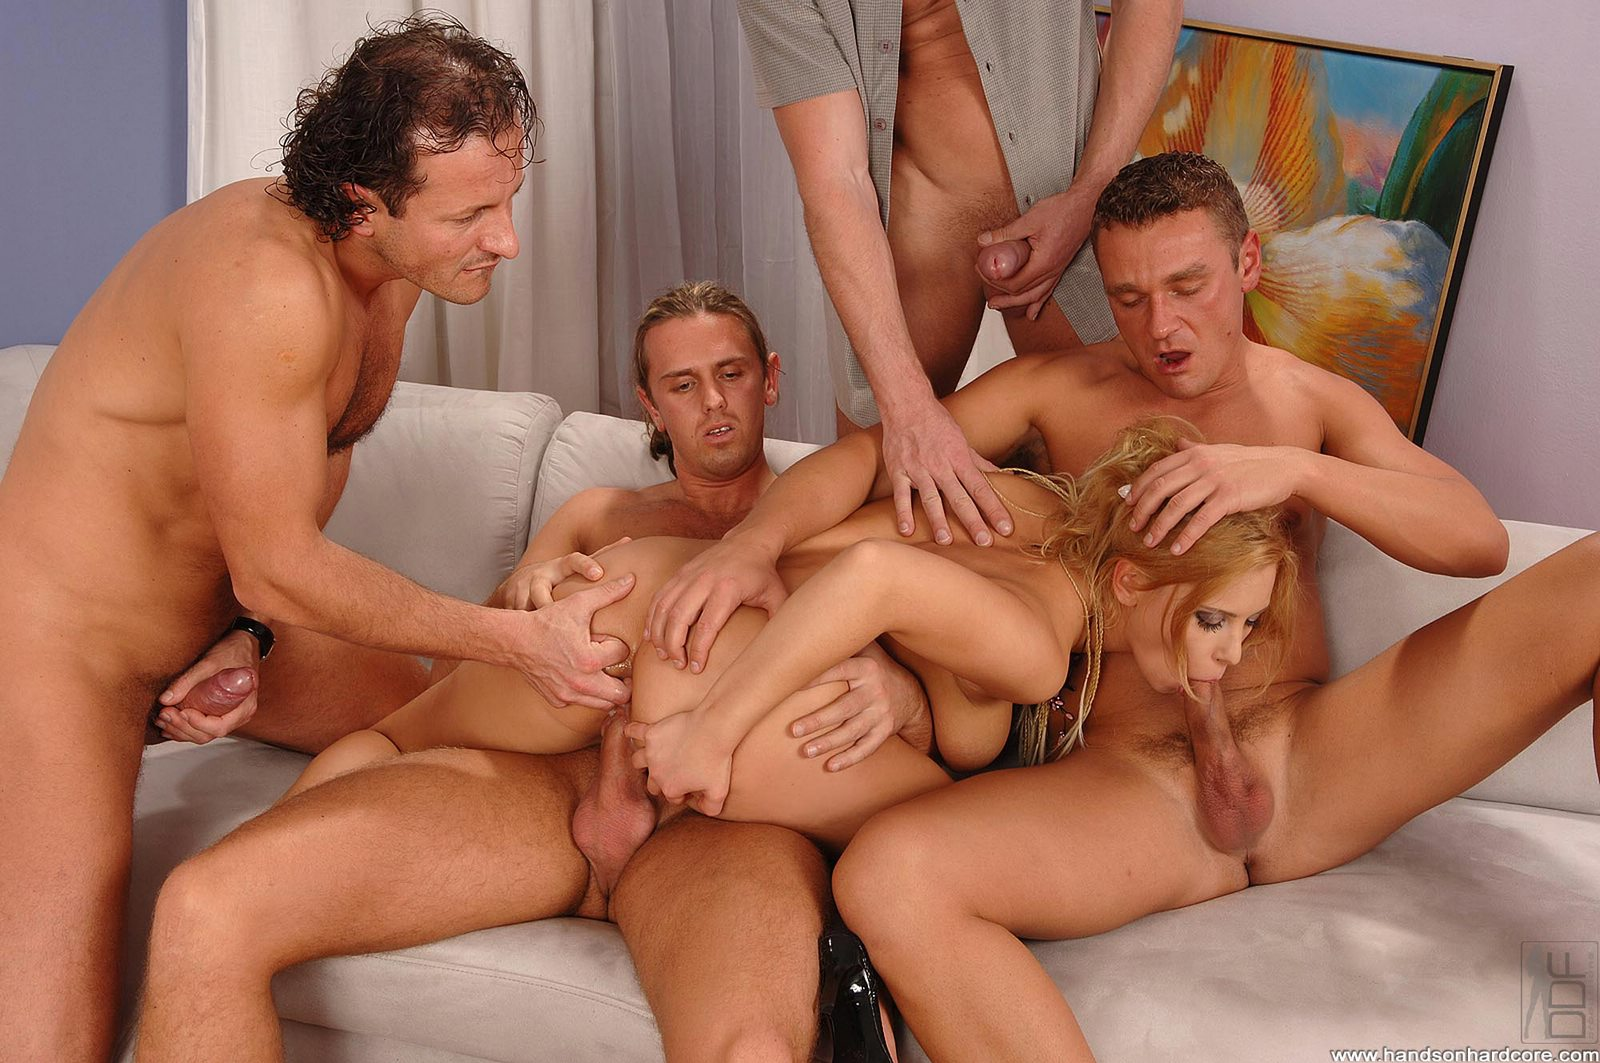 Gang Bang Action